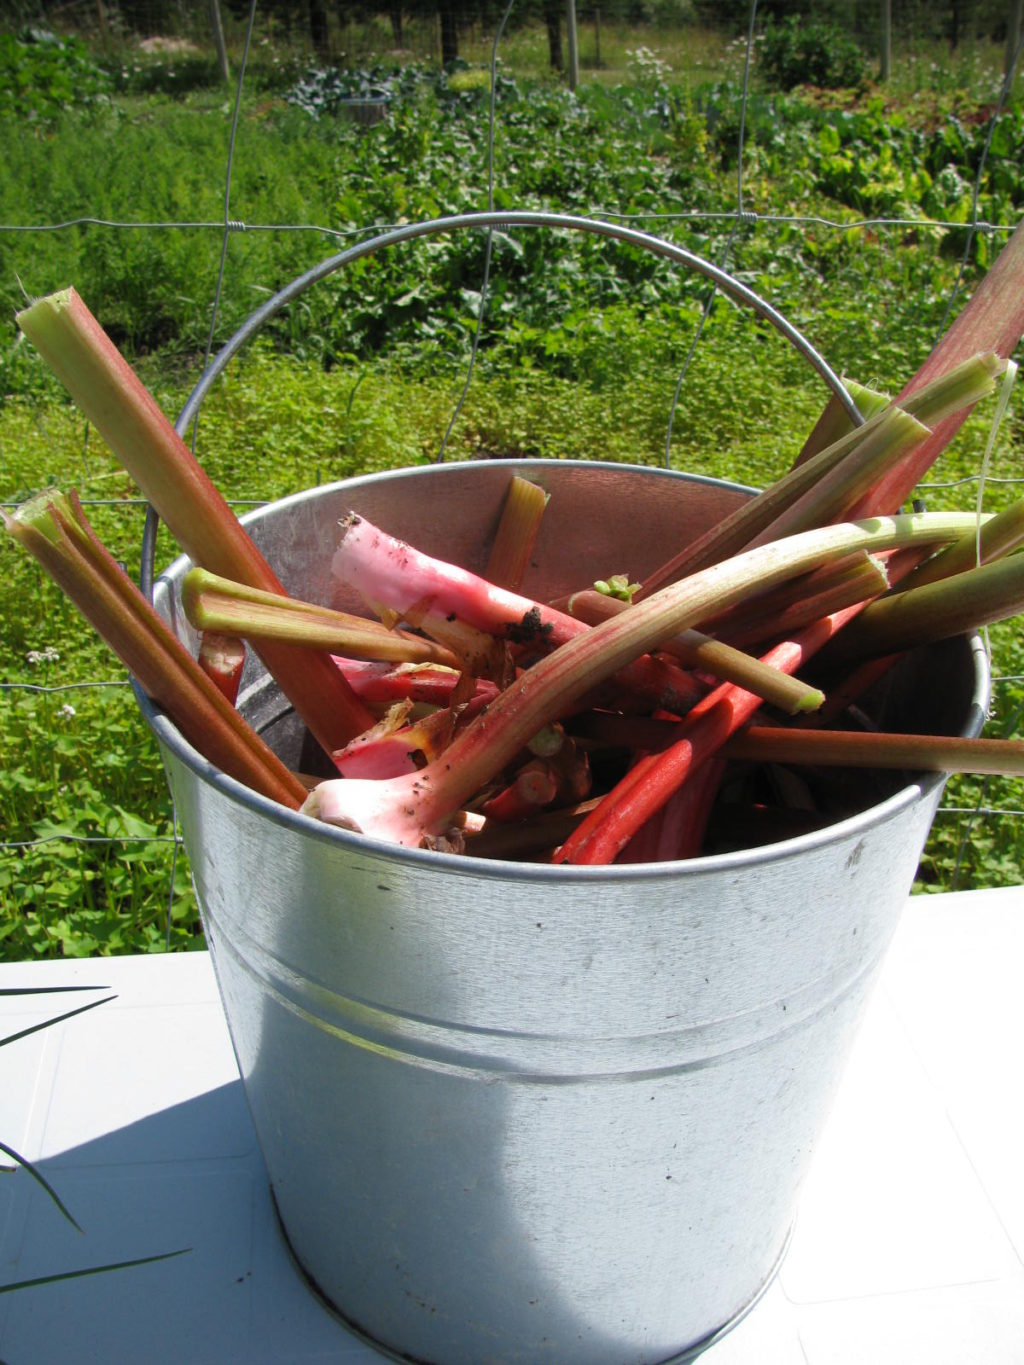 rhubarb stalks in a metal pail freshly harvested